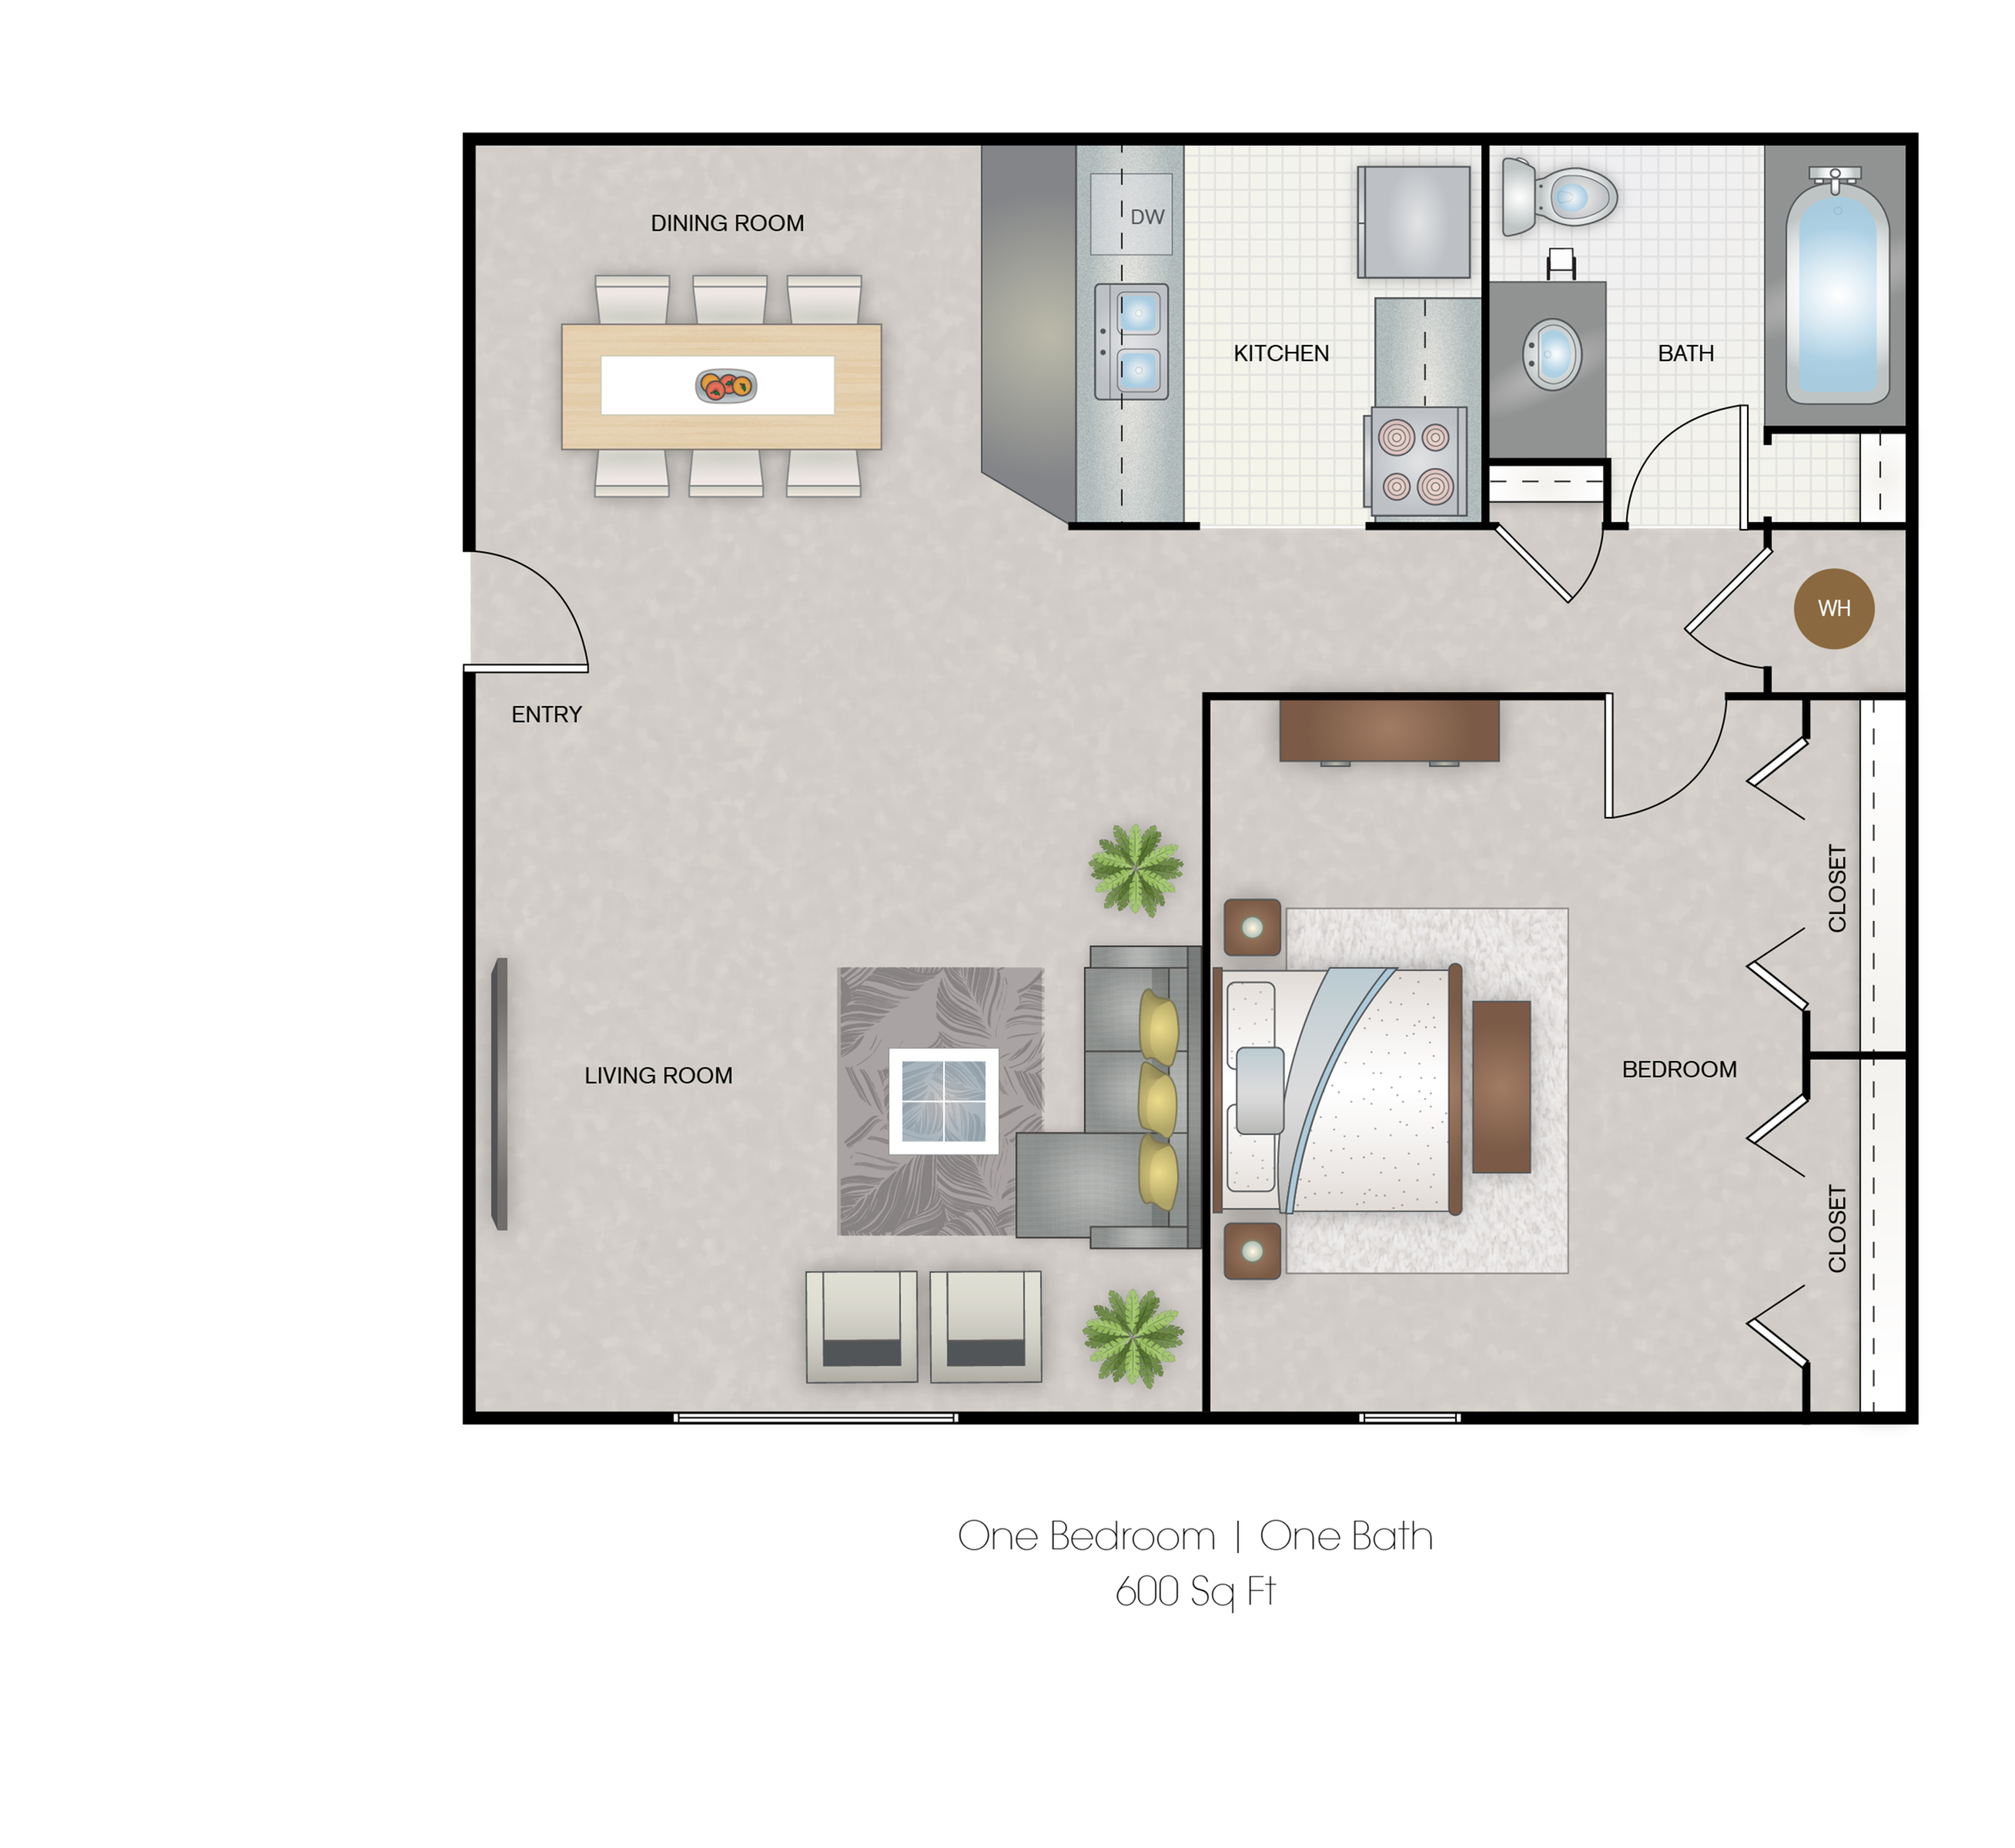 1 Bed 4 More 1 Bed 4 2 Bed 2 1 Bed 4 2 Bed 2 Small One Bedroom 500 Sq Ft Small Beds Baths1bd 1ba Rent 560 Month Deposit 300 Sq Ft500 Wait Listdetails Large One Bedroom 600 Sq Ft Large Beds Baths1bd 1ba Rent 630 Month Deposit 300